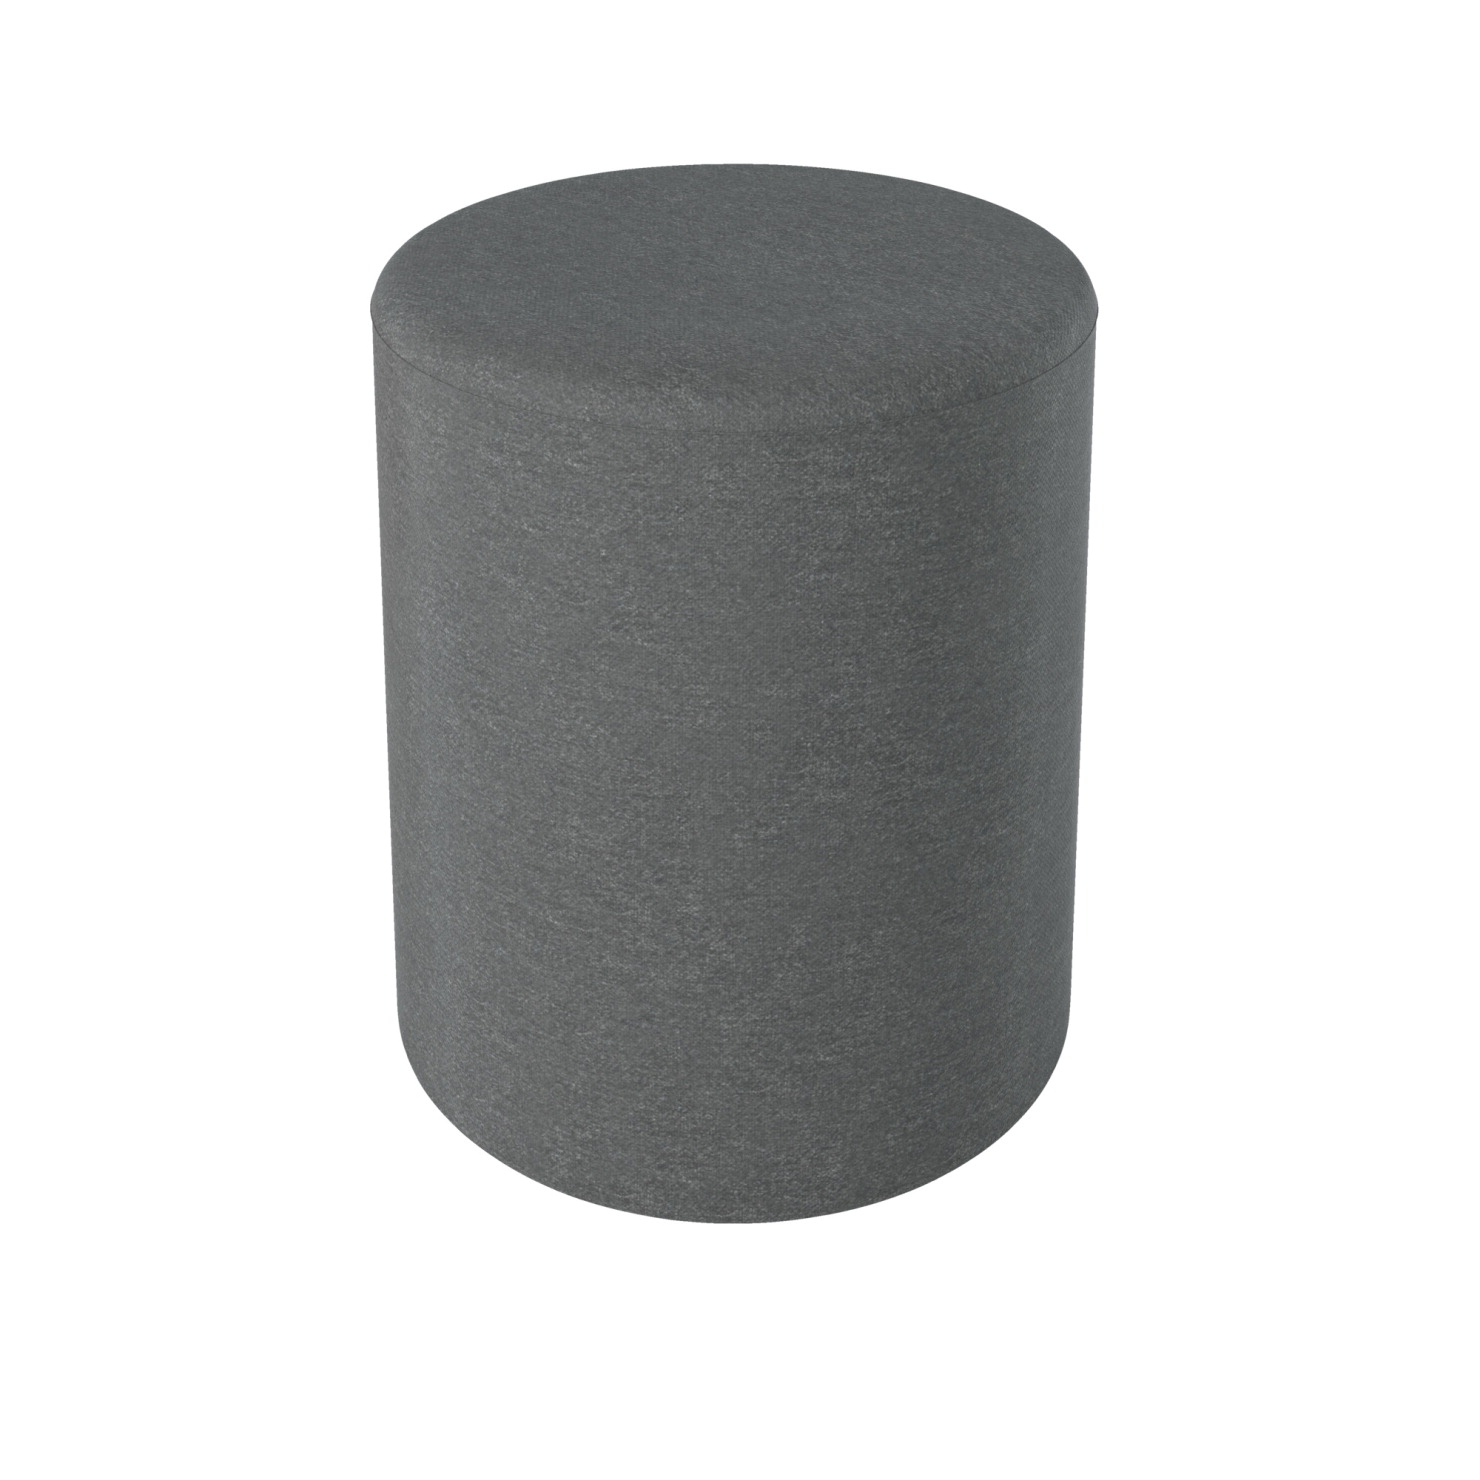 Balt Economy Pouf Stool/Ottoman - Small, 12 x 12 x 16-1/2 Inches, Gray